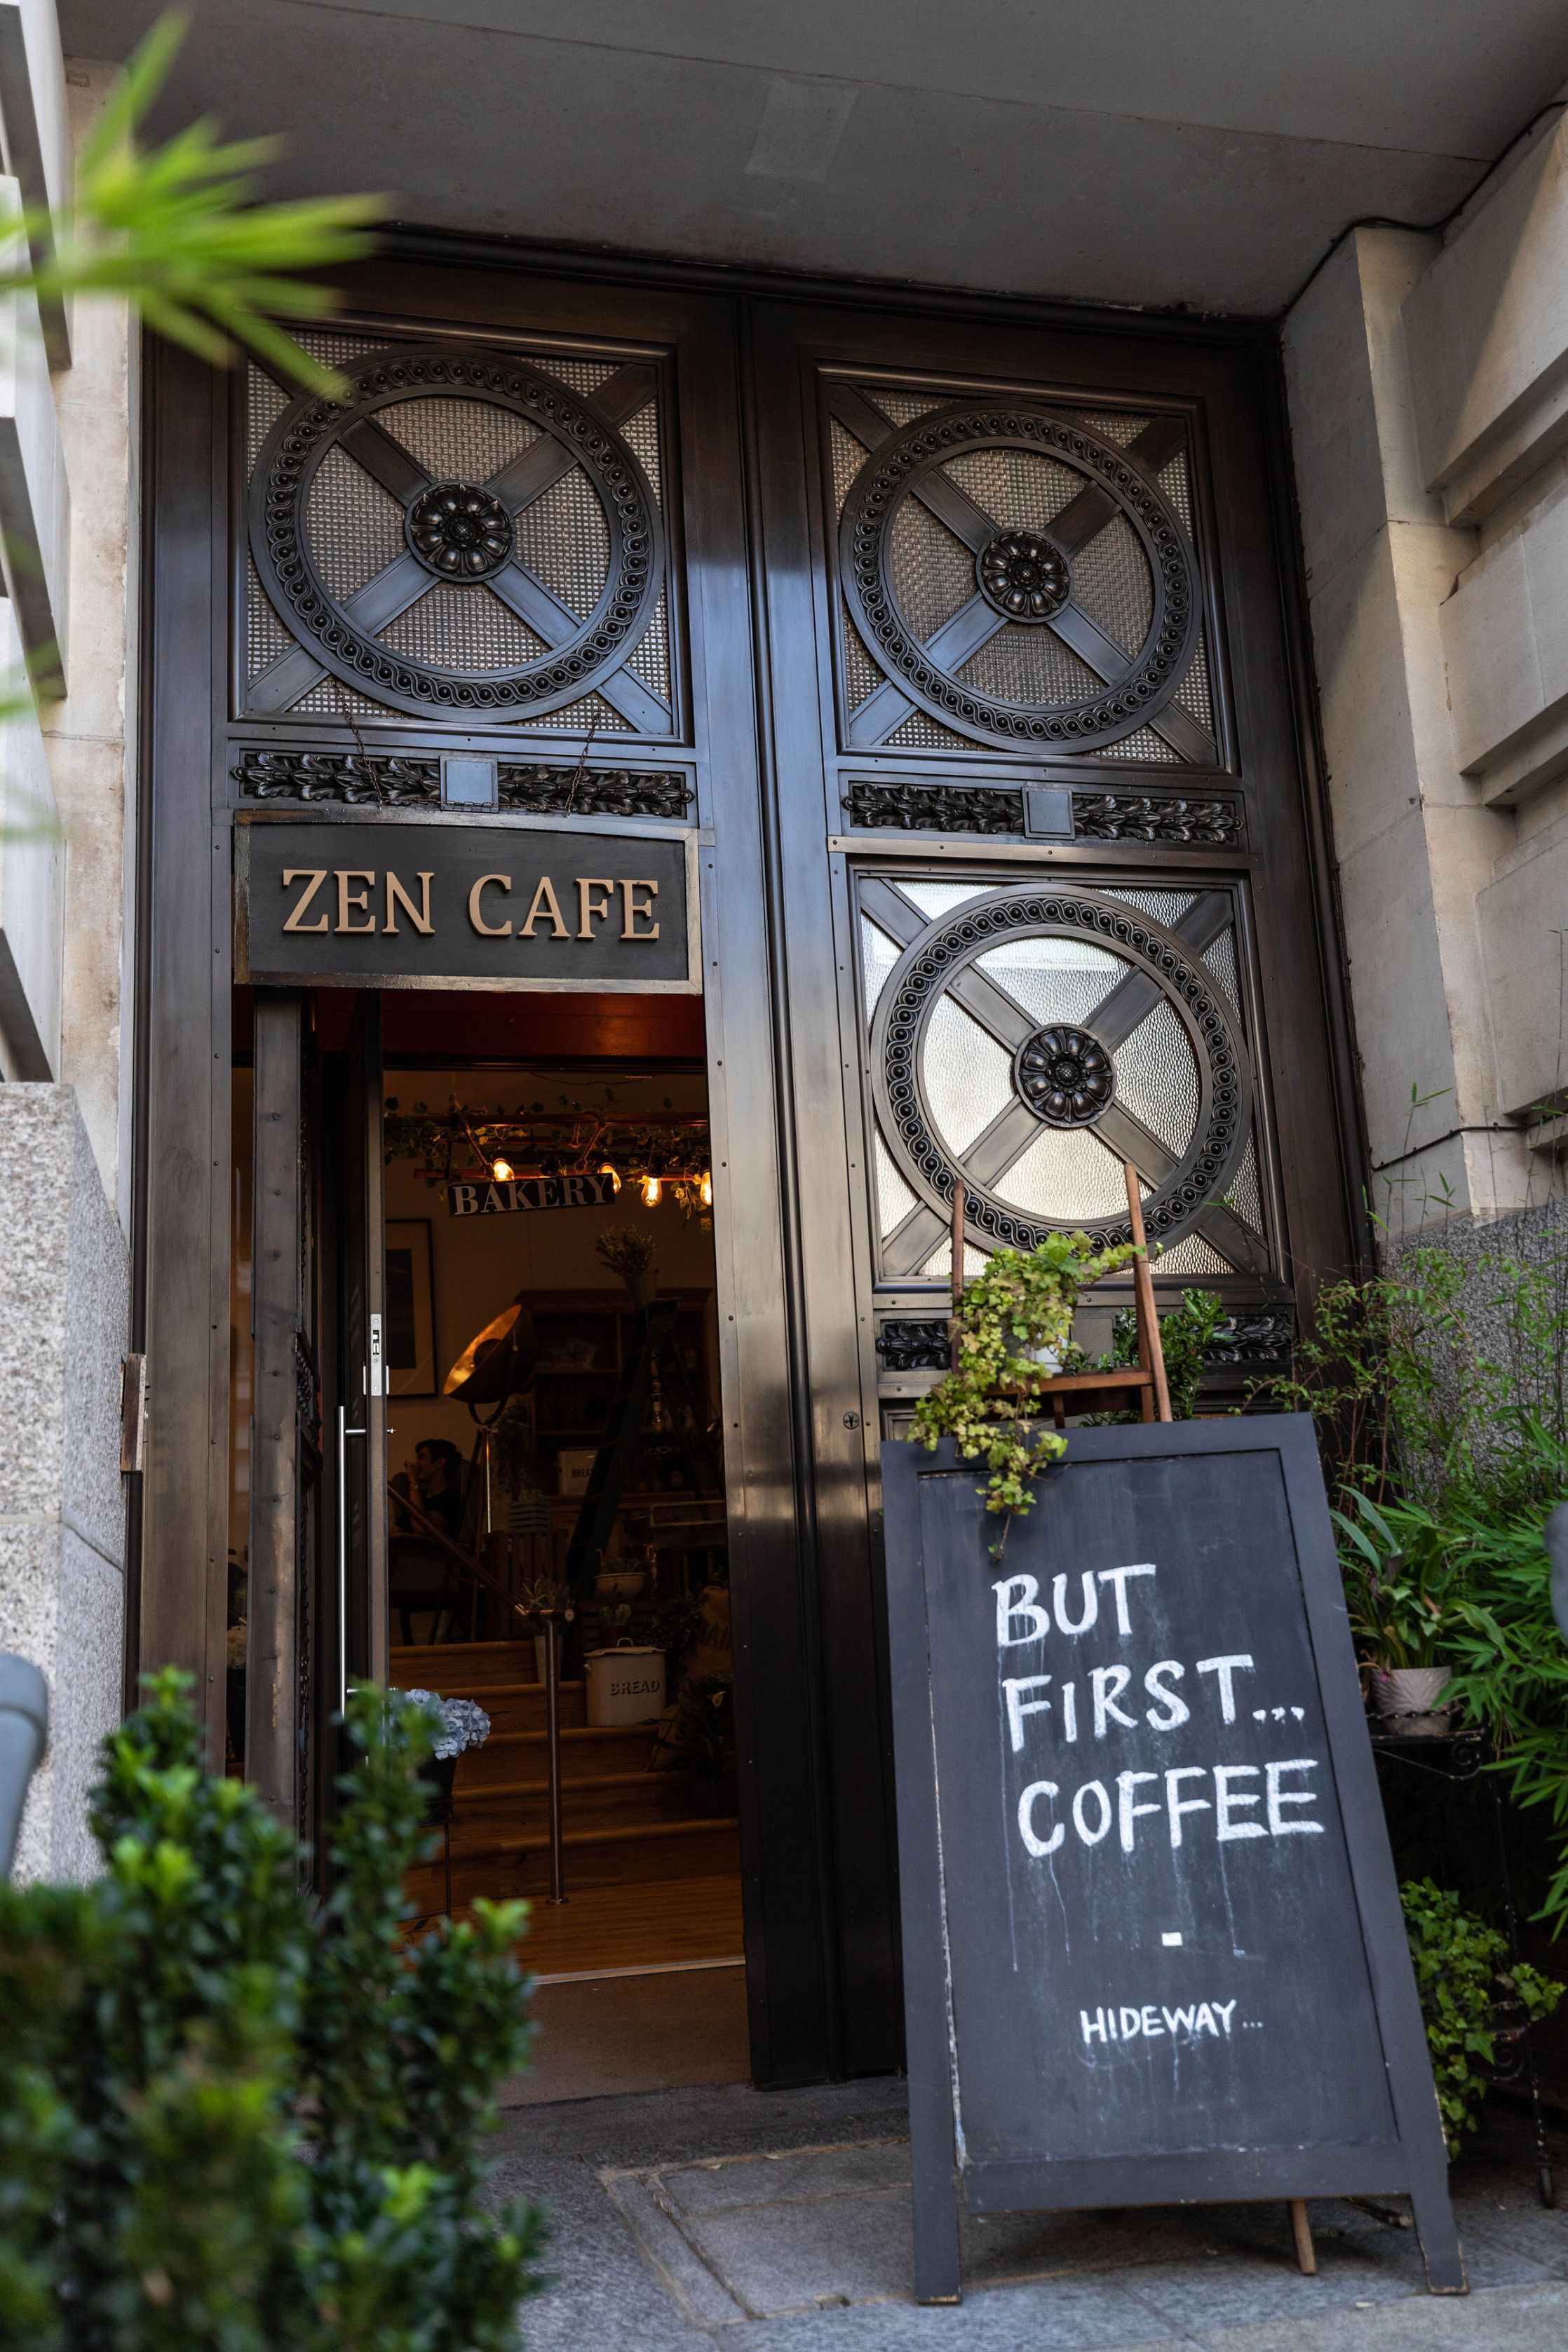 Zen Café London City Guide the Official Travel Guide of London, England